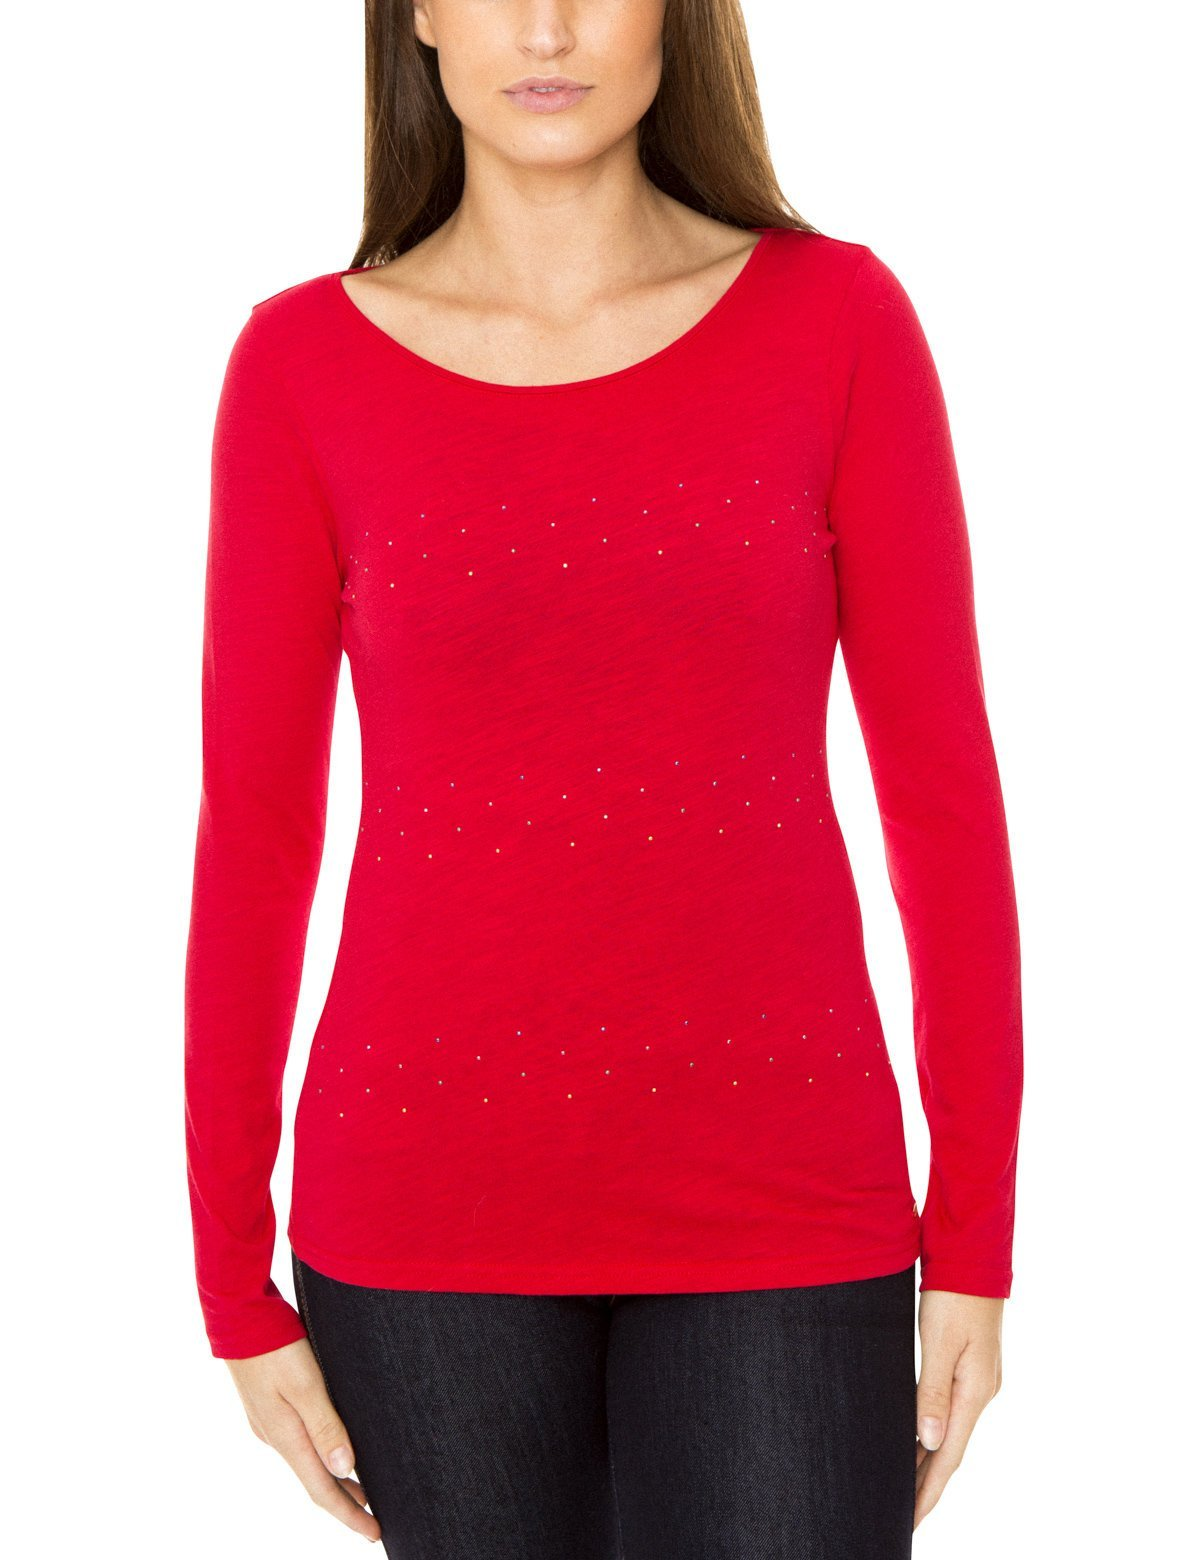 Rhinestone Long Sleeve T-Shirt